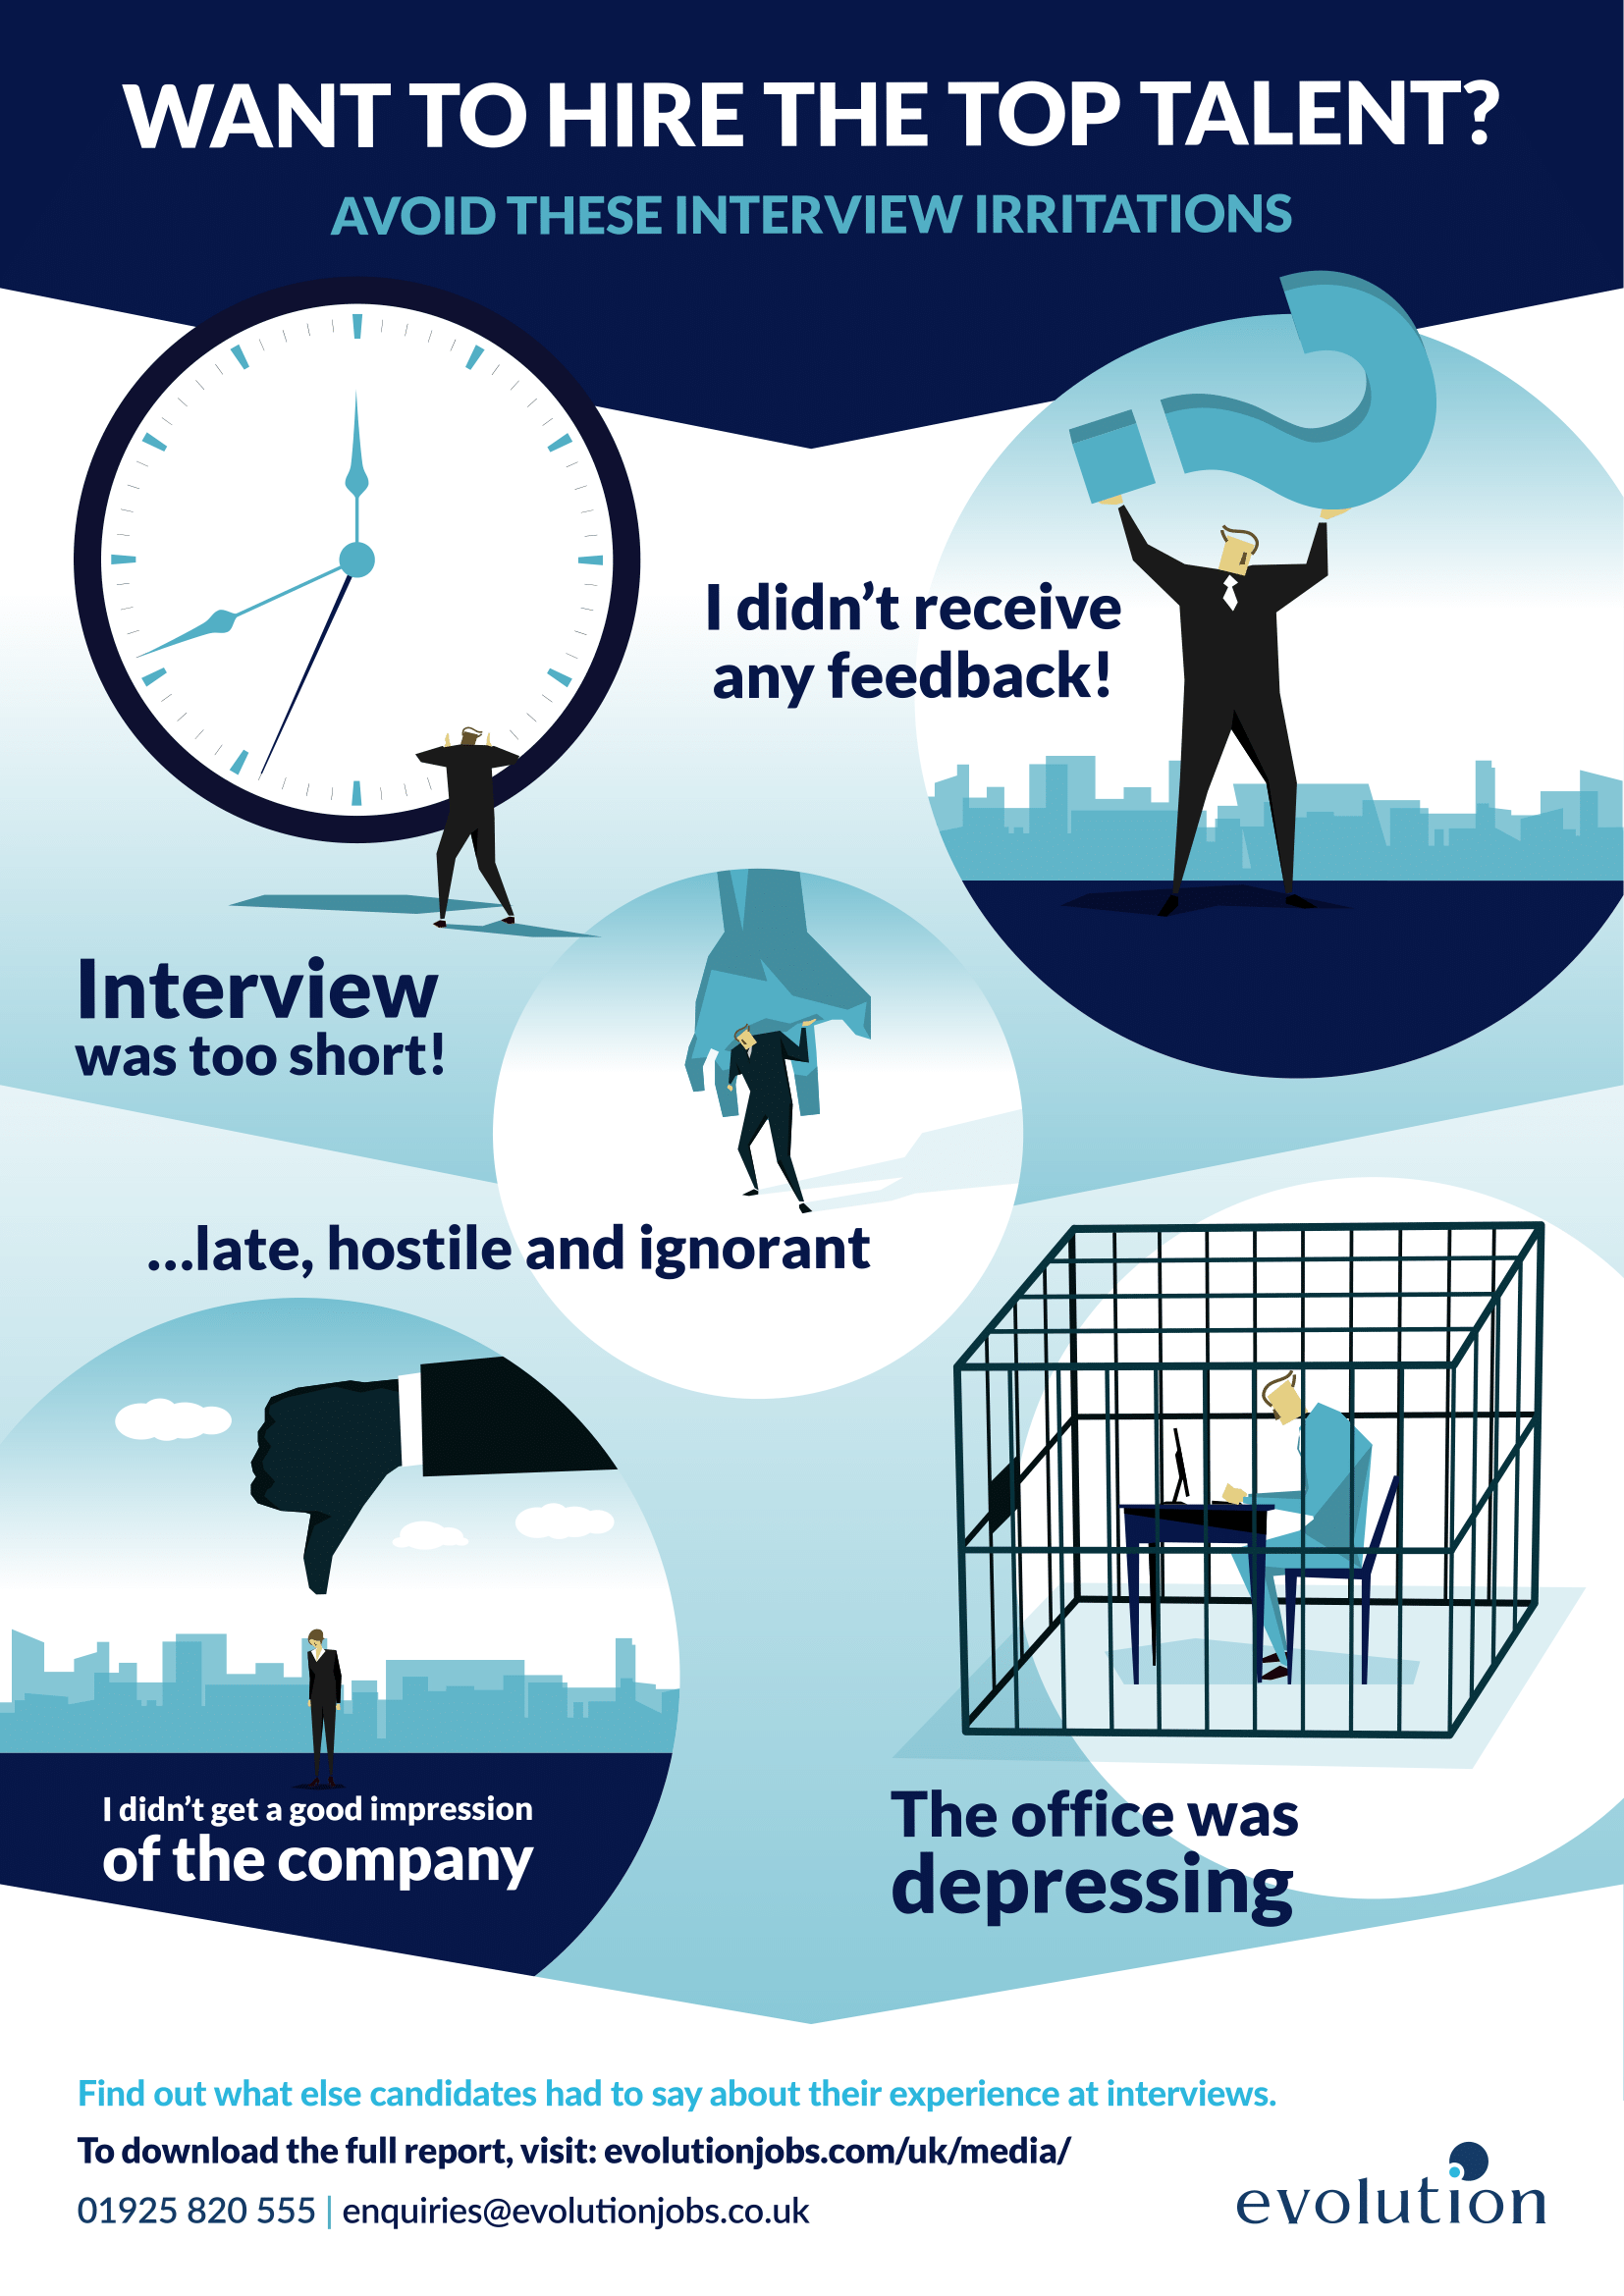 5 Interview Irritations You Need to Avoid [Infographic]